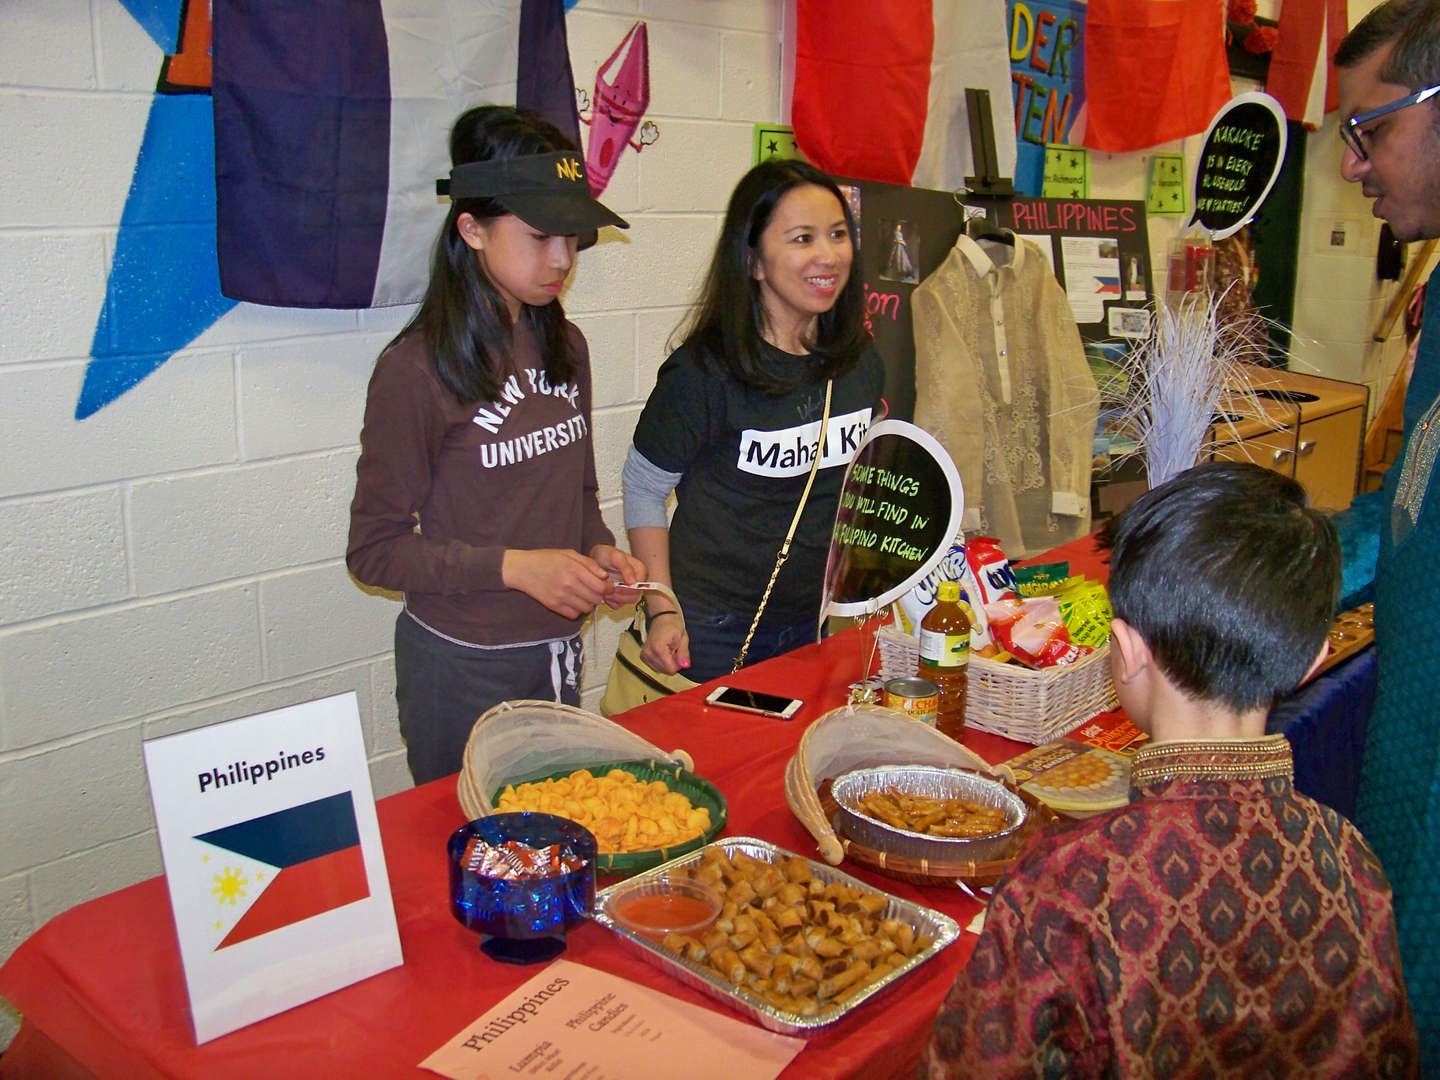 Philippine food display with mother and daughter